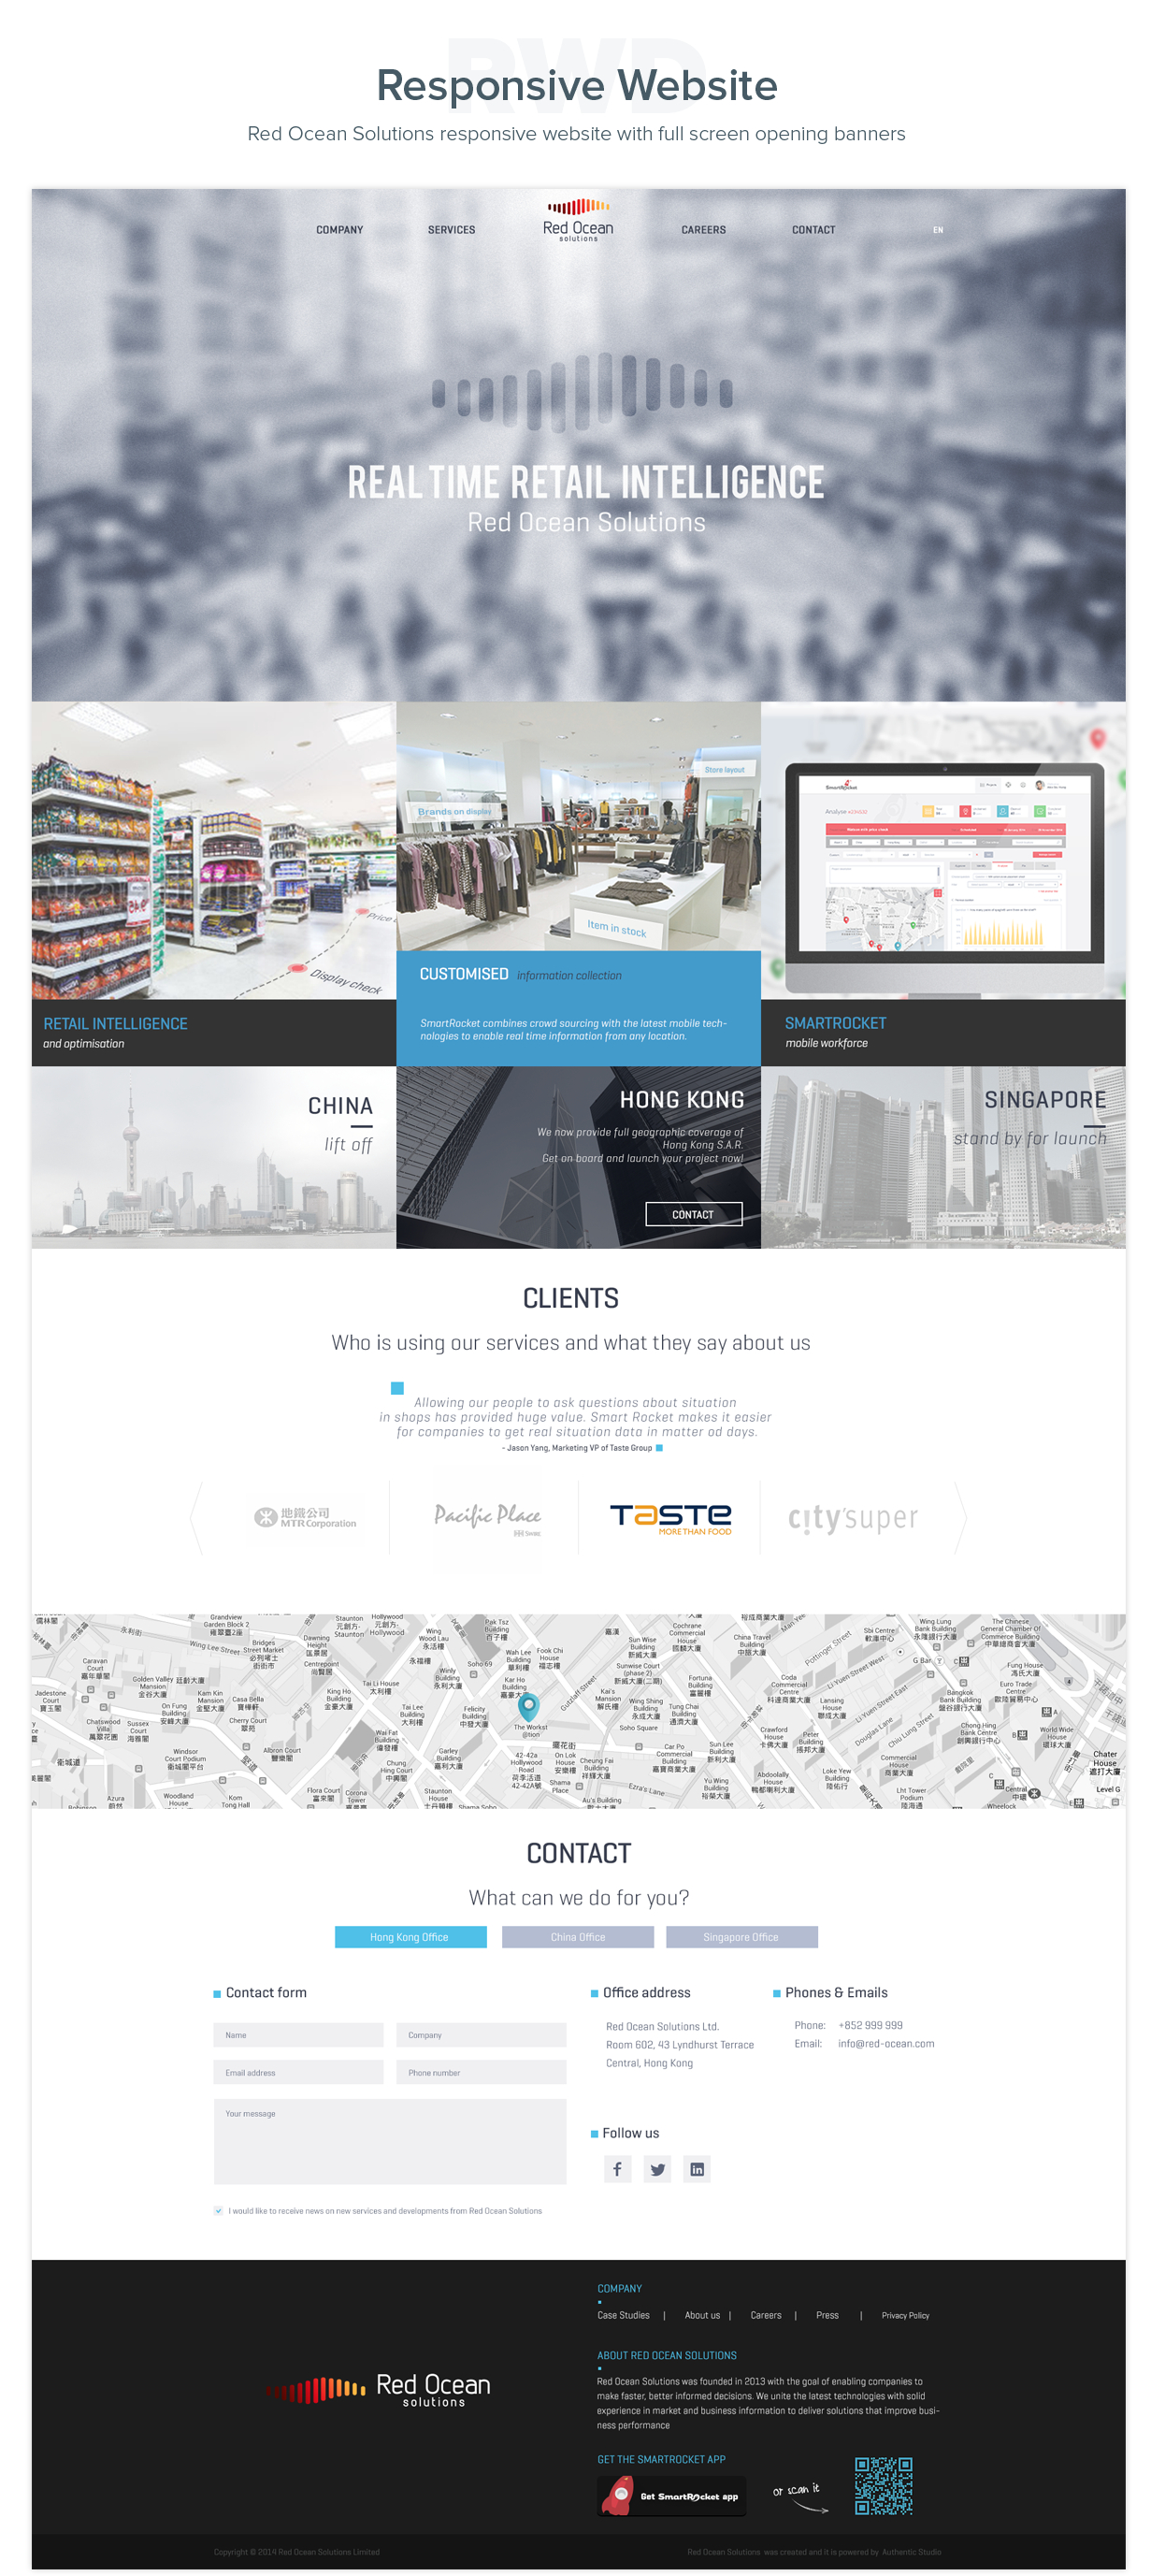 https://media.authentic-studio.com/web-content/uploads/2020/11/full-corporate-identity-package-for-hong-kong-market-example-4.jpg